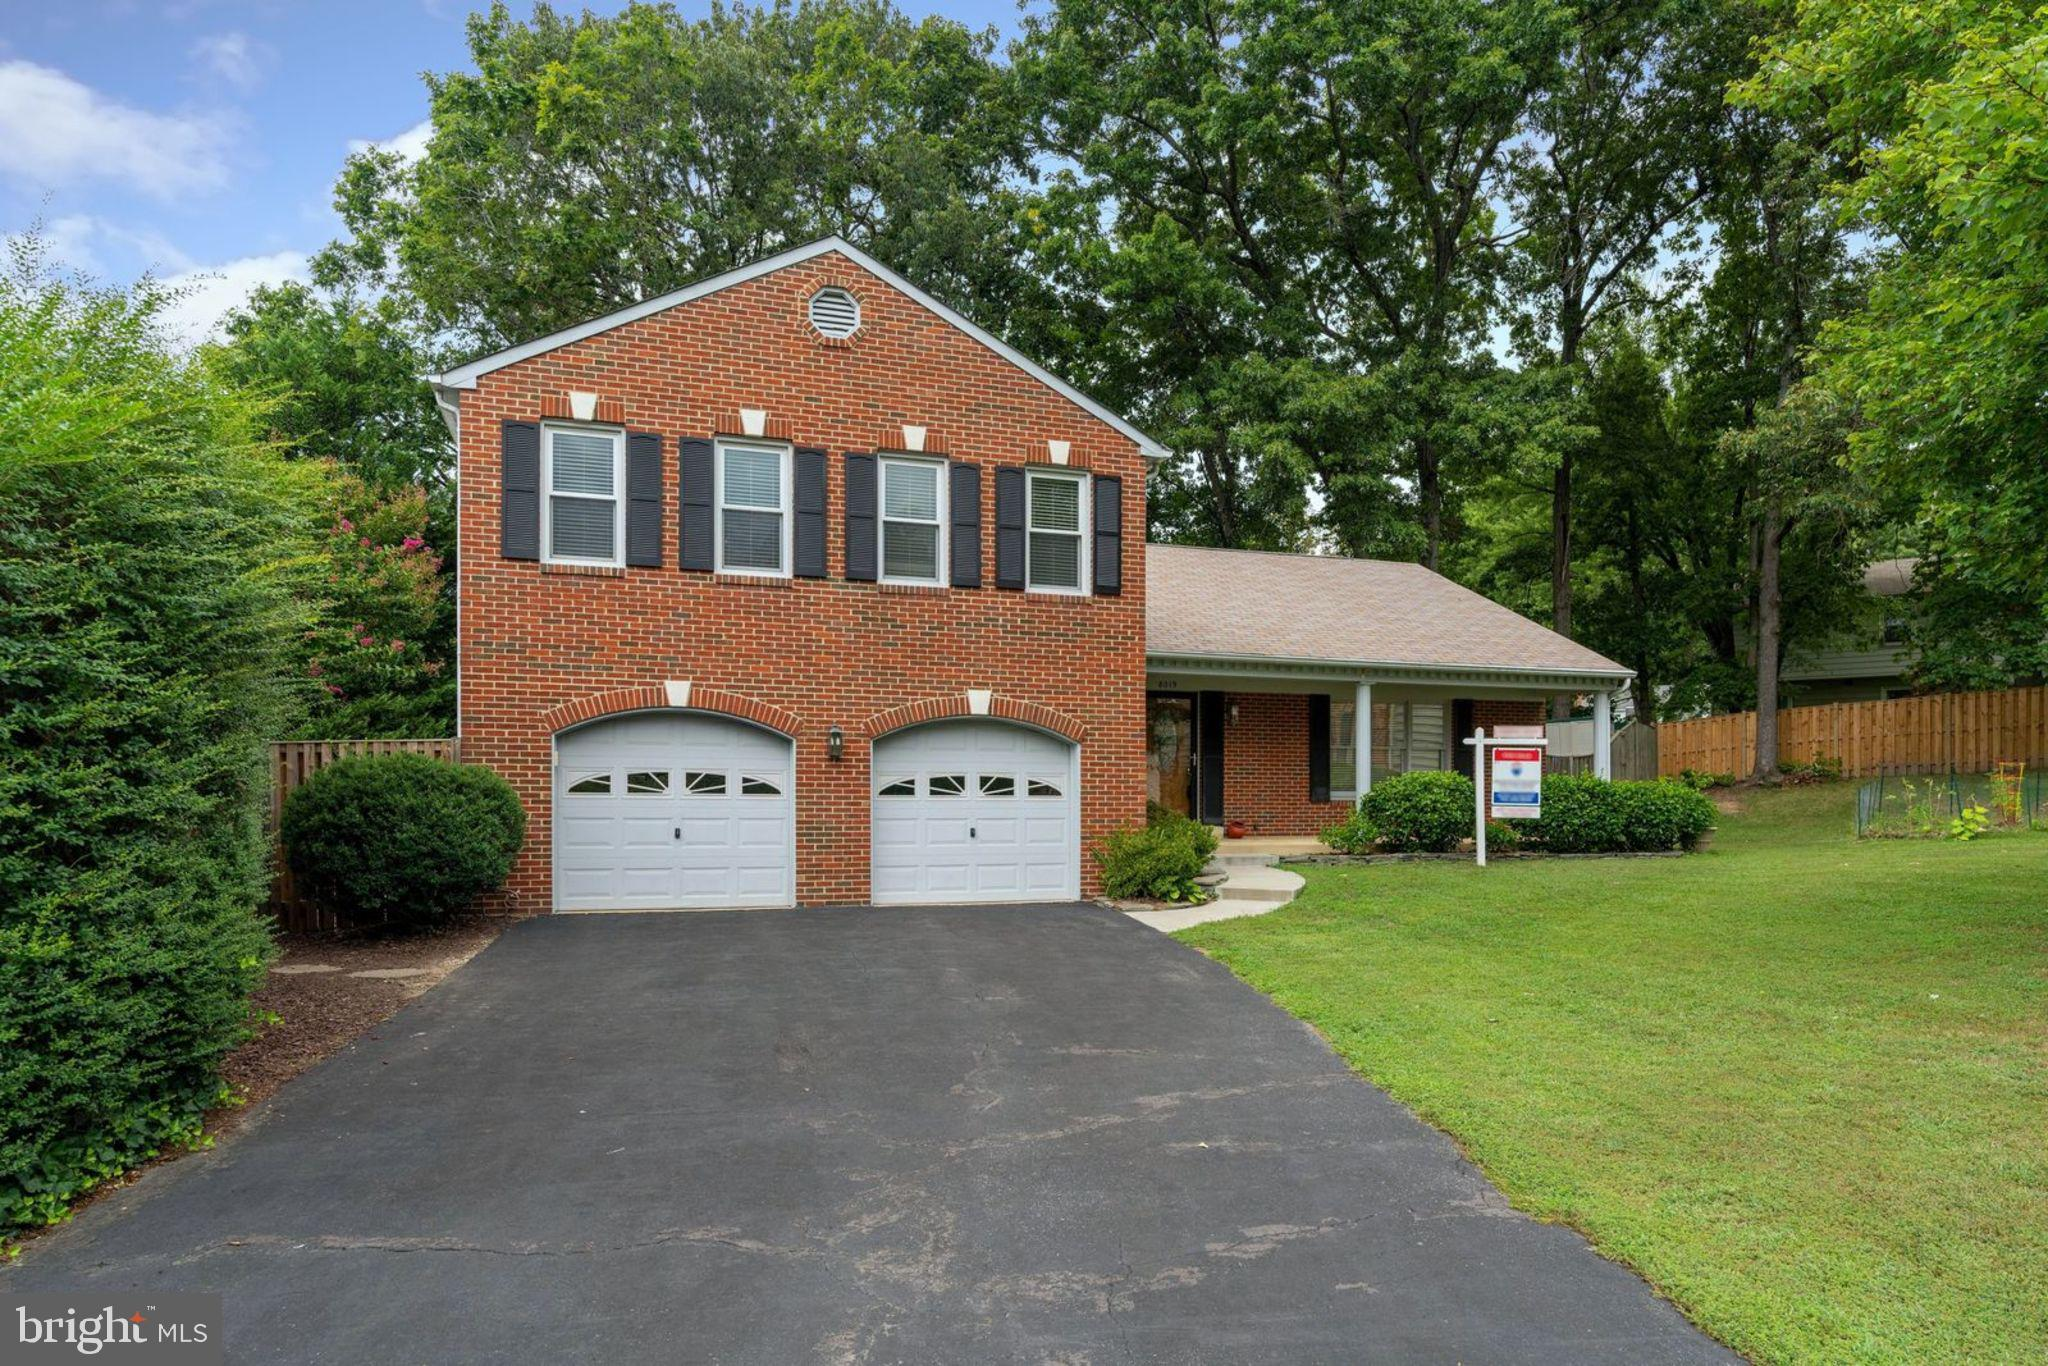 Stop the Car!  Spacious Light-Filled 4 Bedroom 2.5 bath Colonial  in Rolling Forest. Modern White Kitchen w/ Granite, Stainless Steel Appliances. Breakfast Area Opens to Sunken Family Room w/ Cozy Fireplace. Private Cul De Sac. 2 Car Garage & Long Driveway. West Springfield ES/Irving MS/West Springfield HS pyramid. Perfect location - close to FFX County Parkway, I-95 shopping and restaurants!  A MUST SEE!!